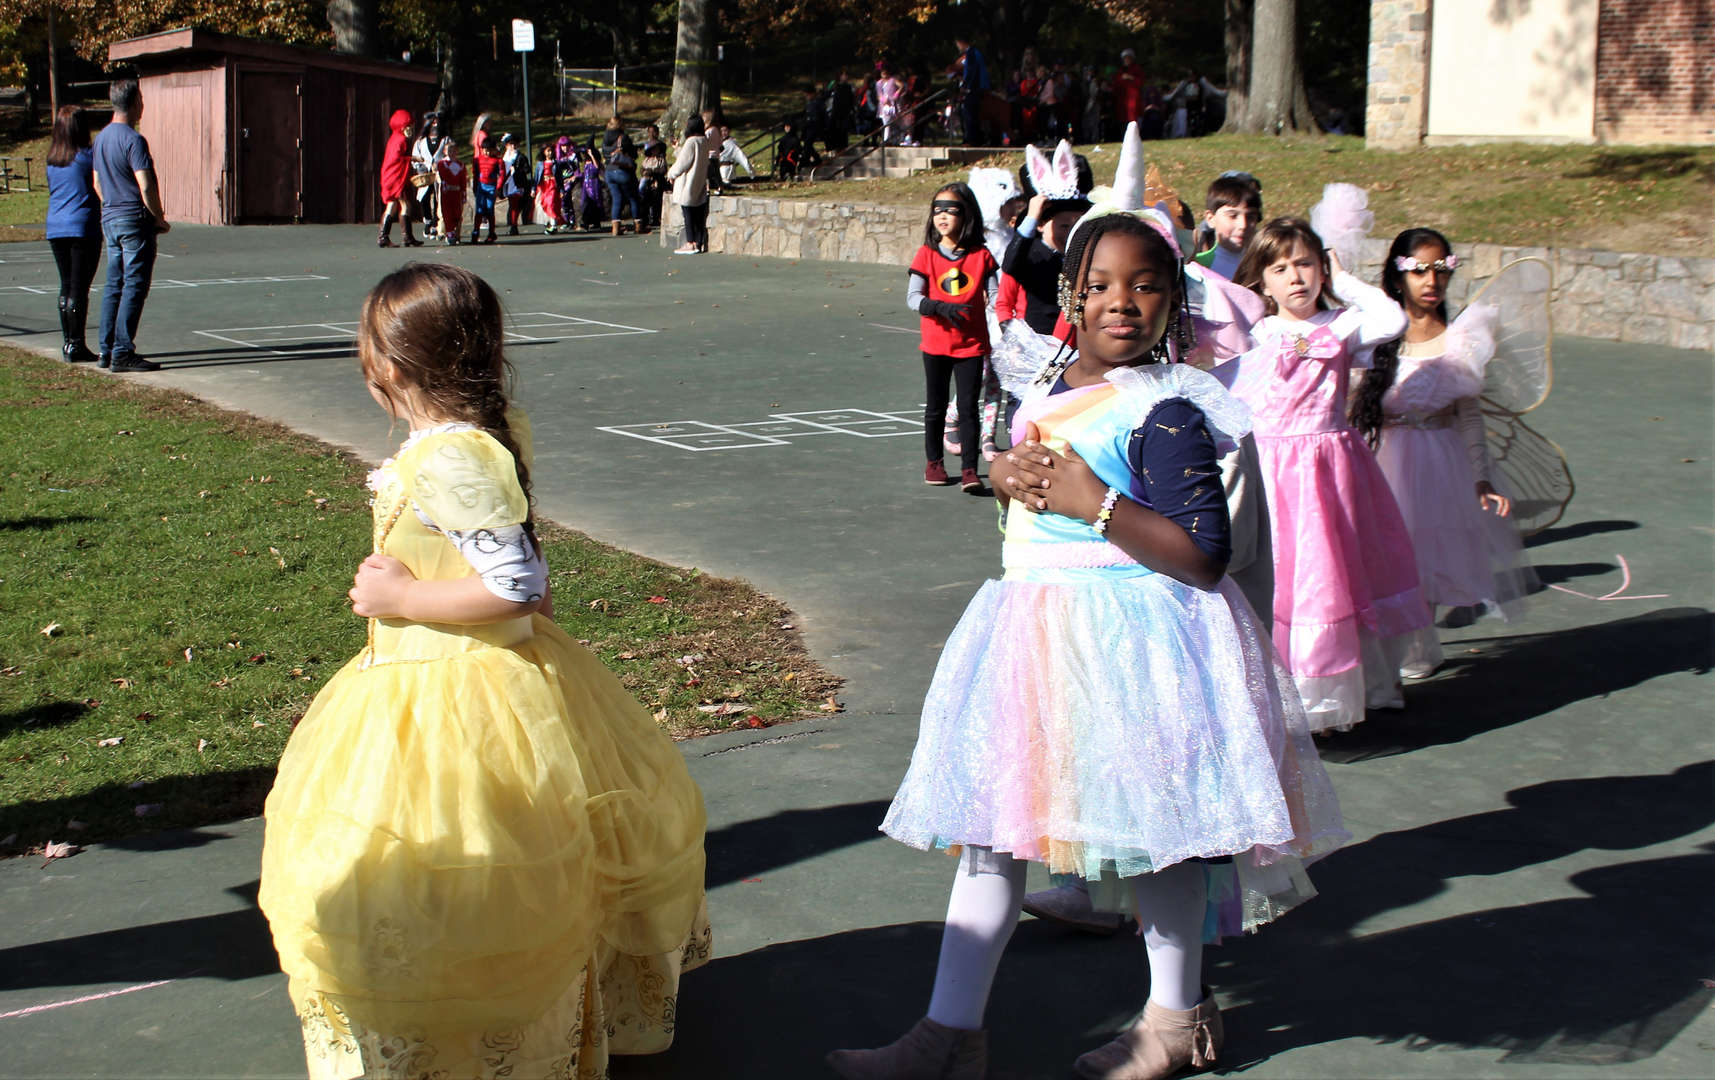 Costumed students walking in a Halloween parade.